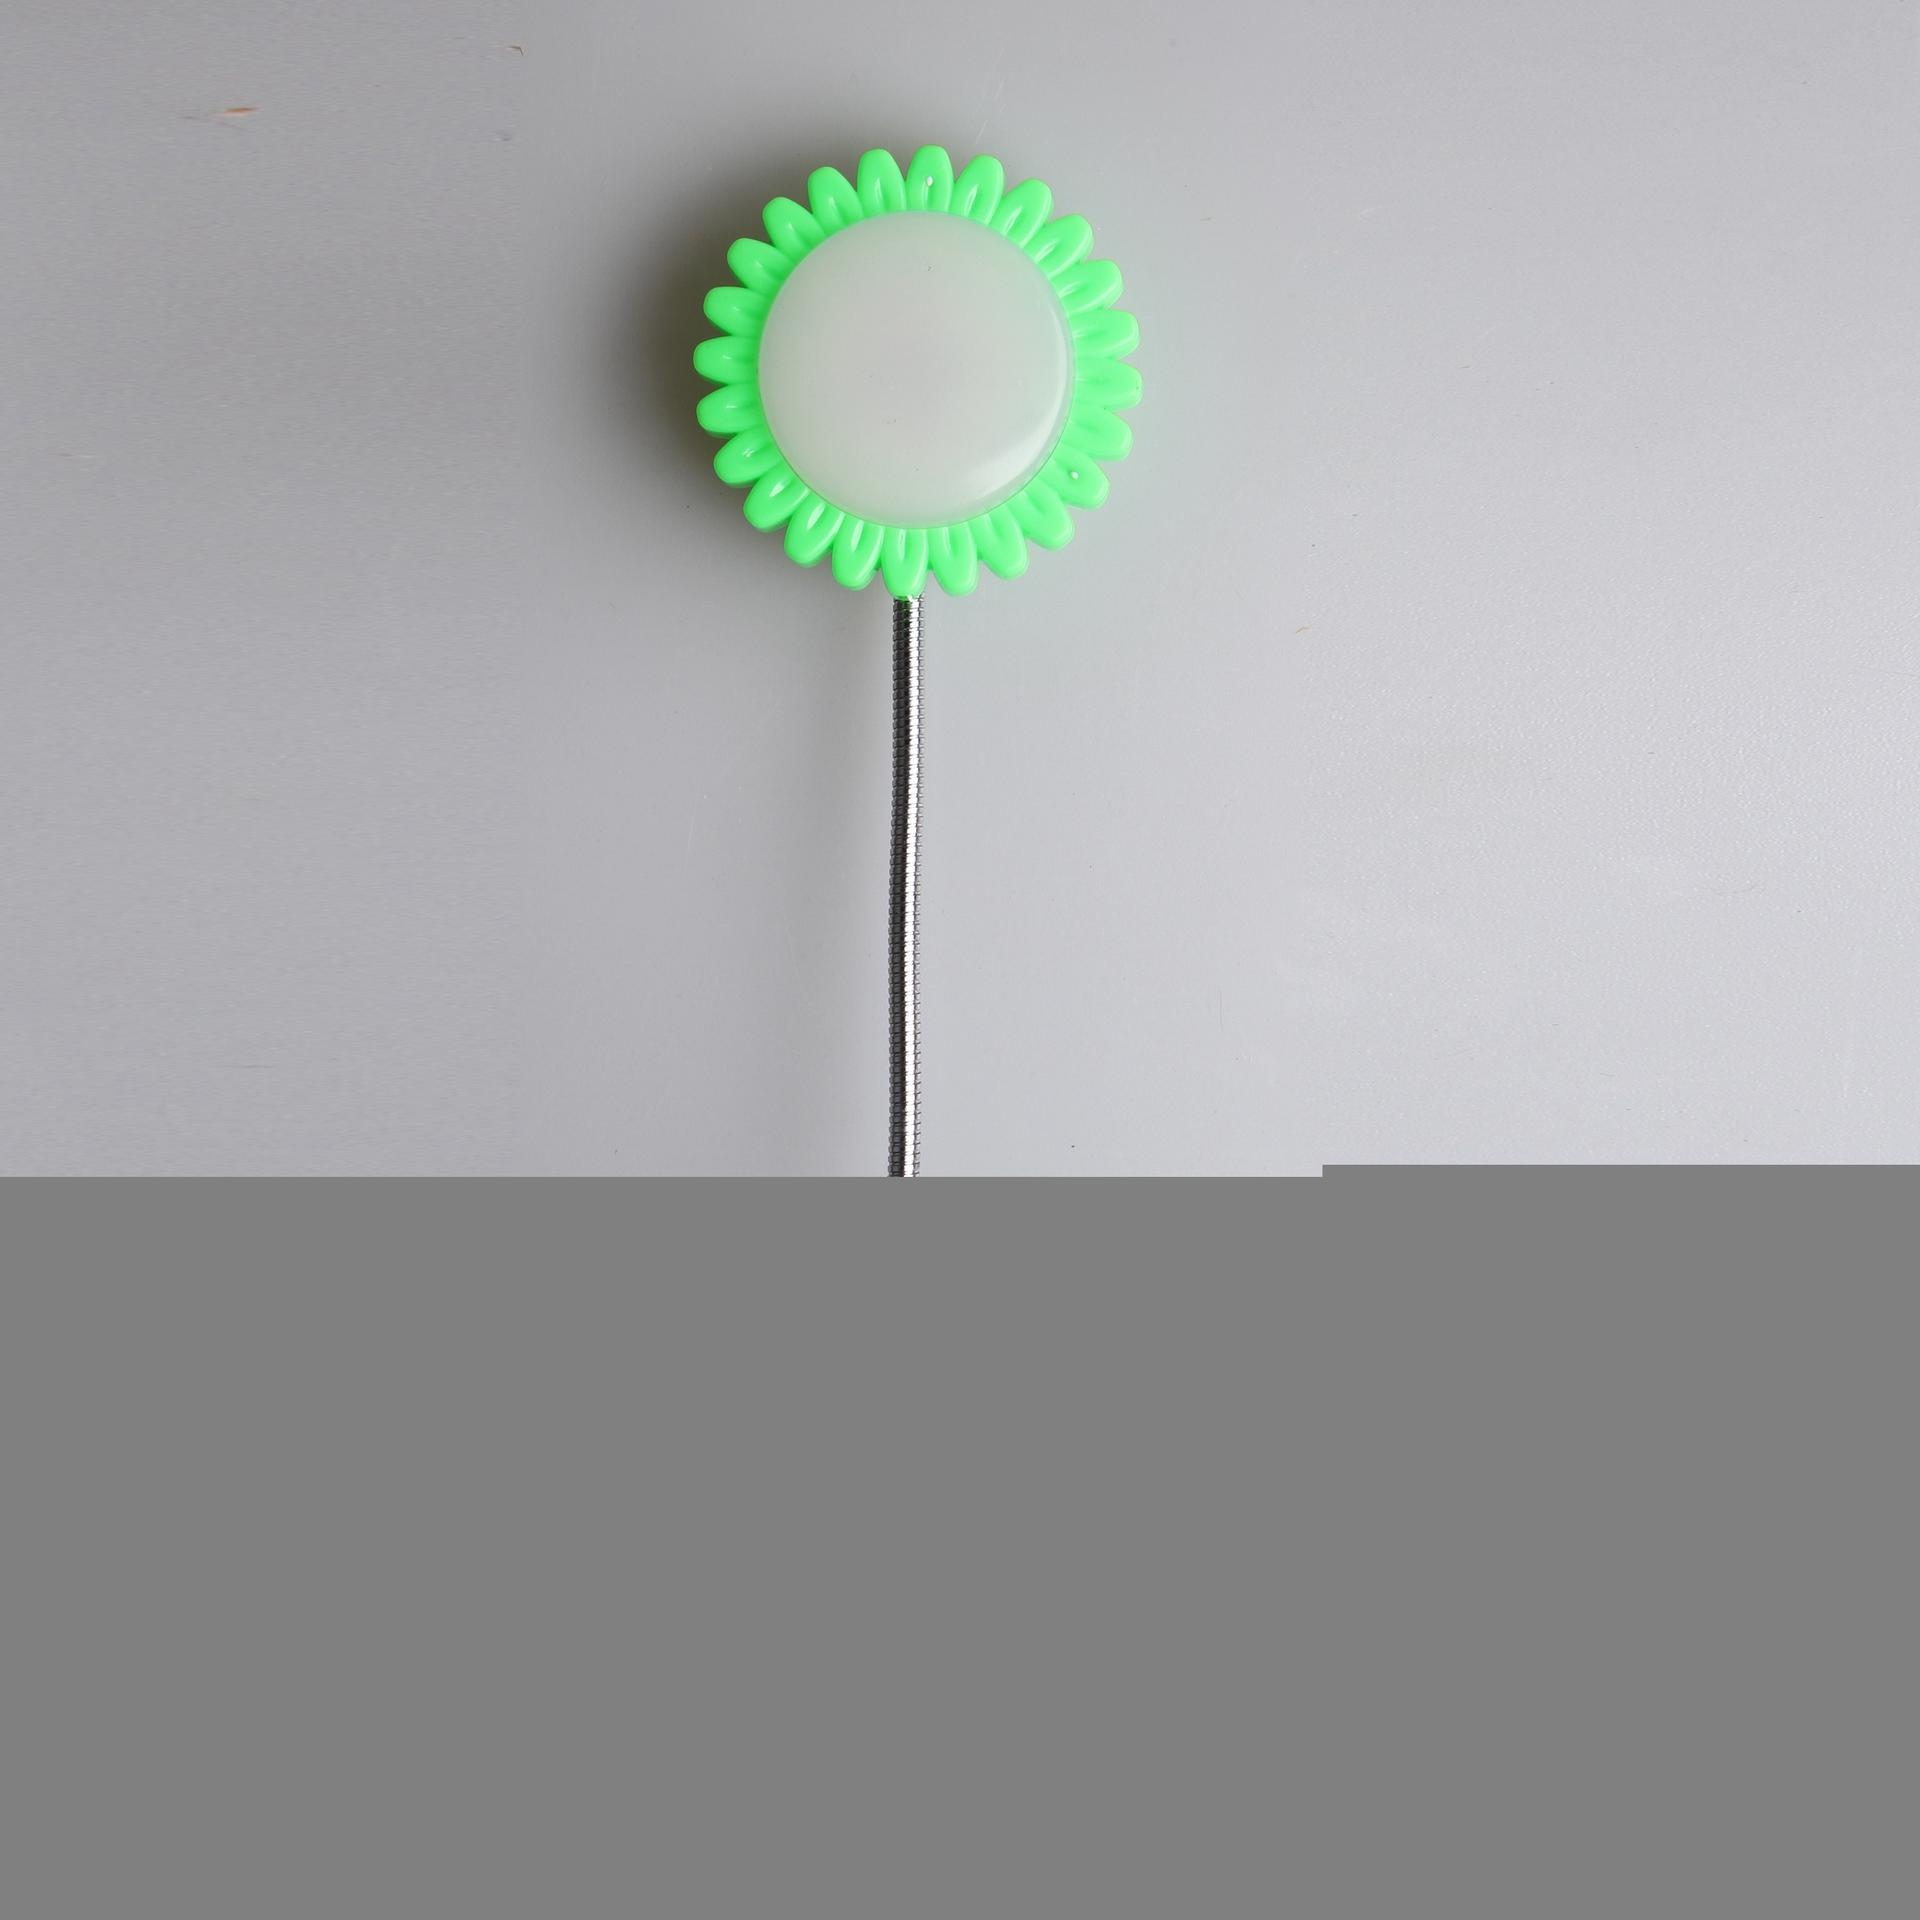 Sunflower shape 16SMD mini switch plug in table lamp night light with 1.5W AC 110V or 220V W049